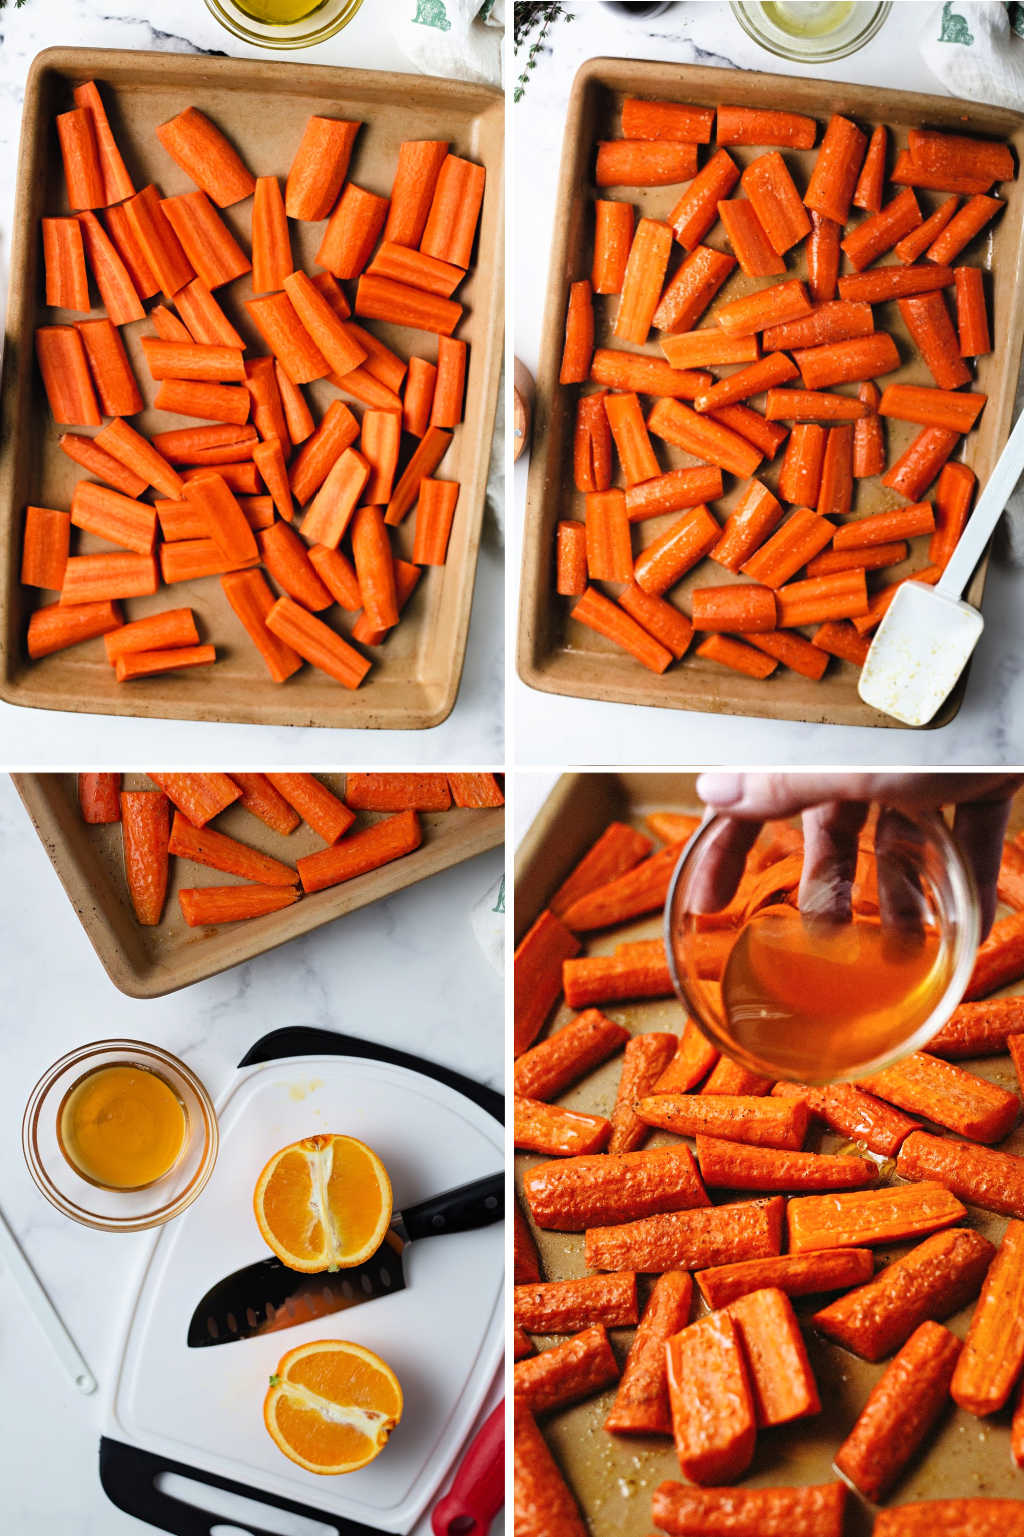 process steps for preparing roasted carrots with honey.